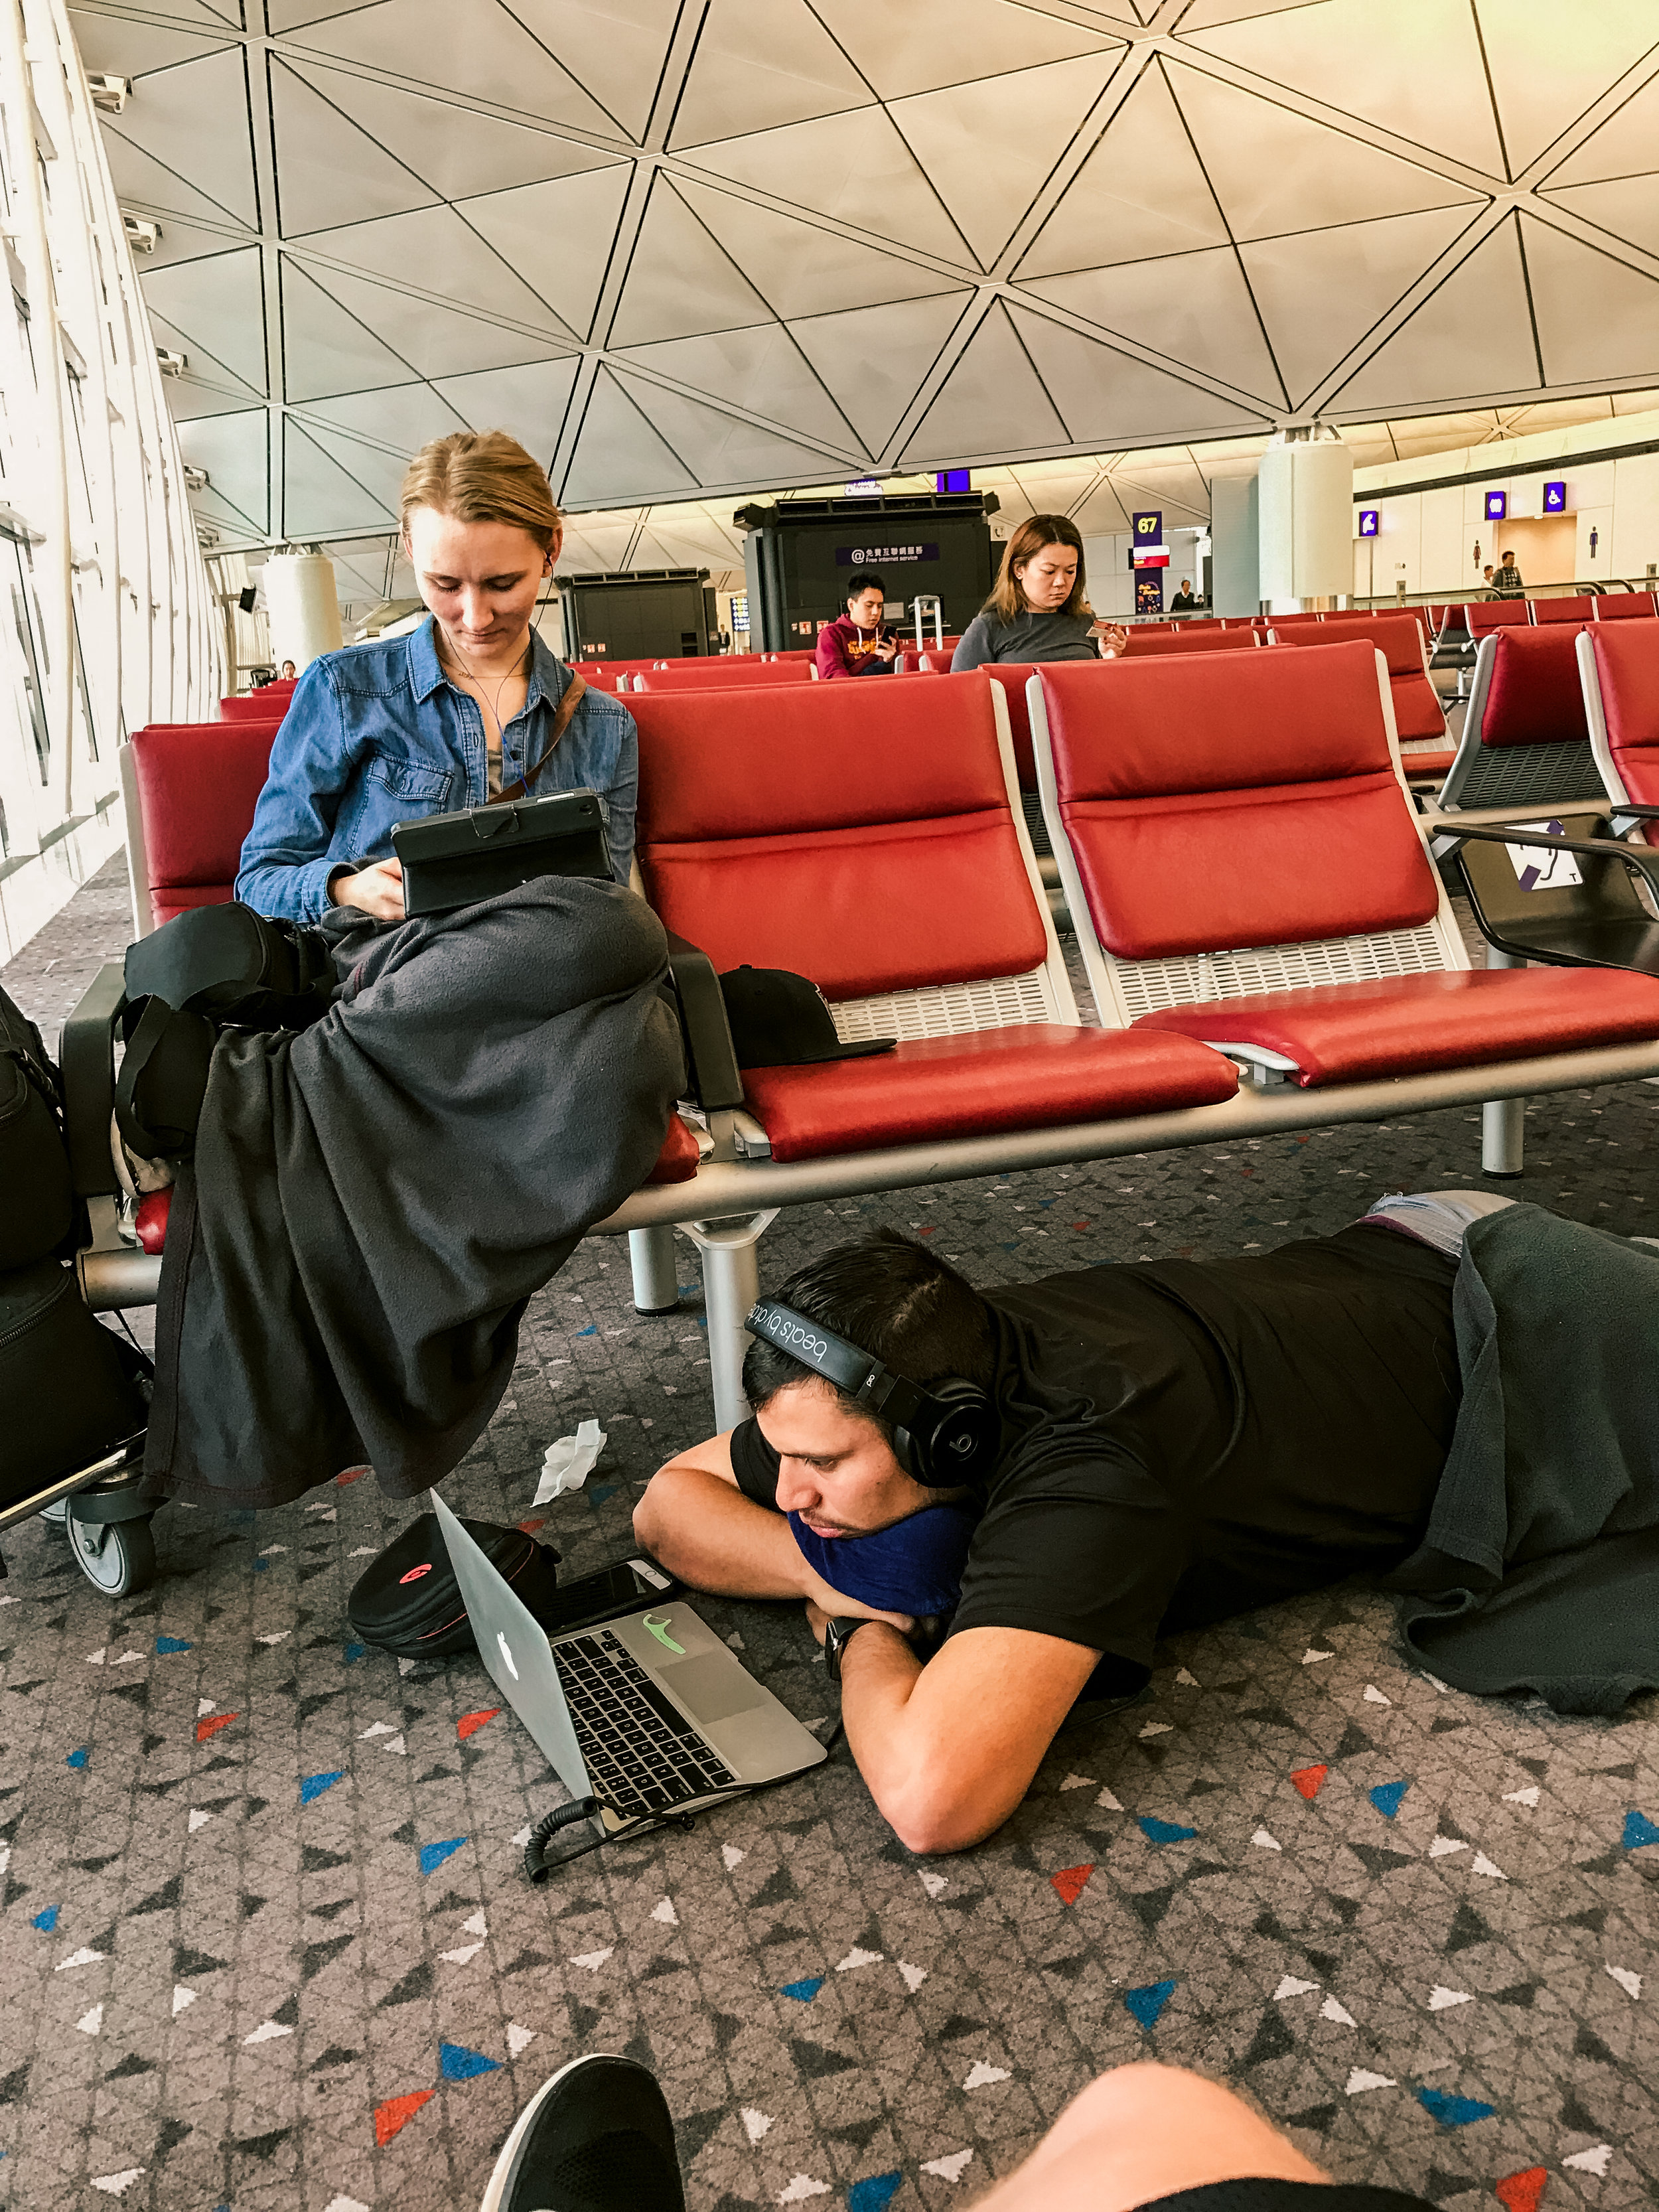 Lots of time was spent in airports ;)